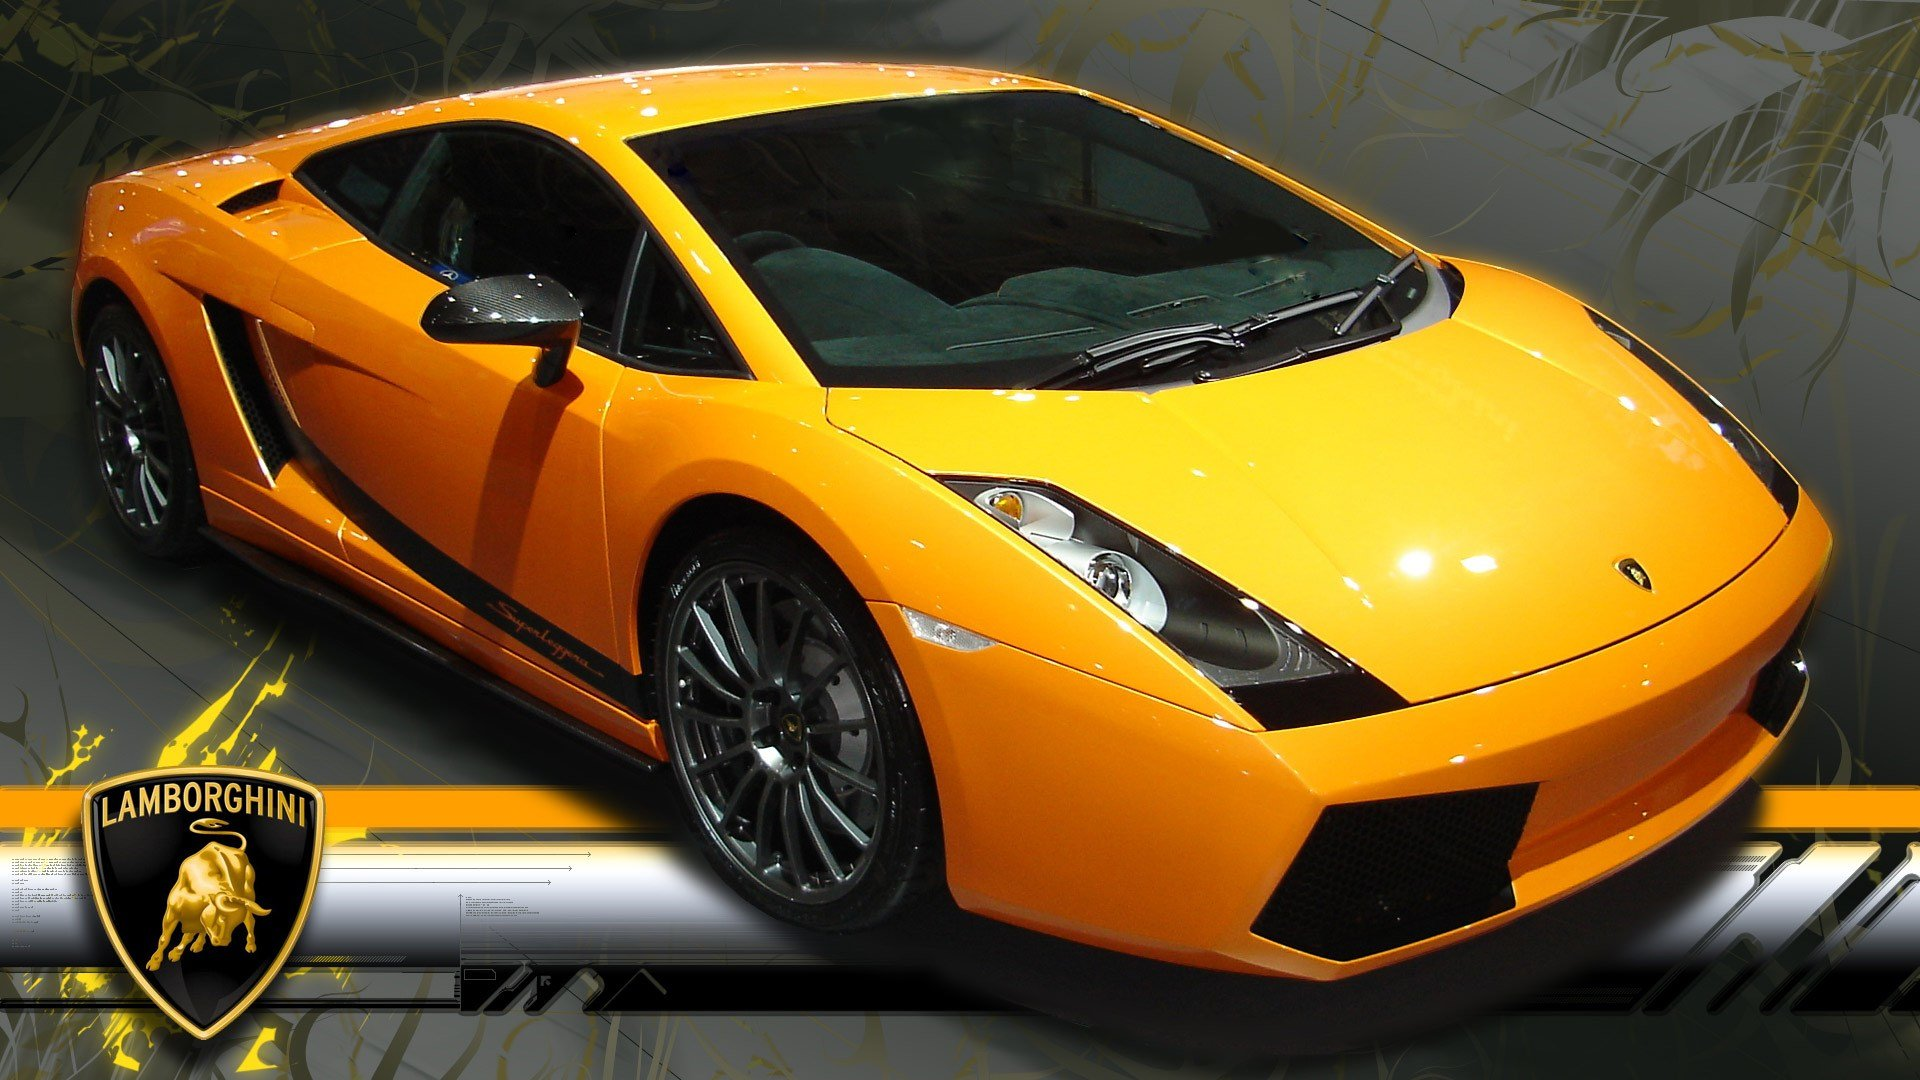 New Download Lamborghini Wallpapers In Hd For Desktop And On This Month